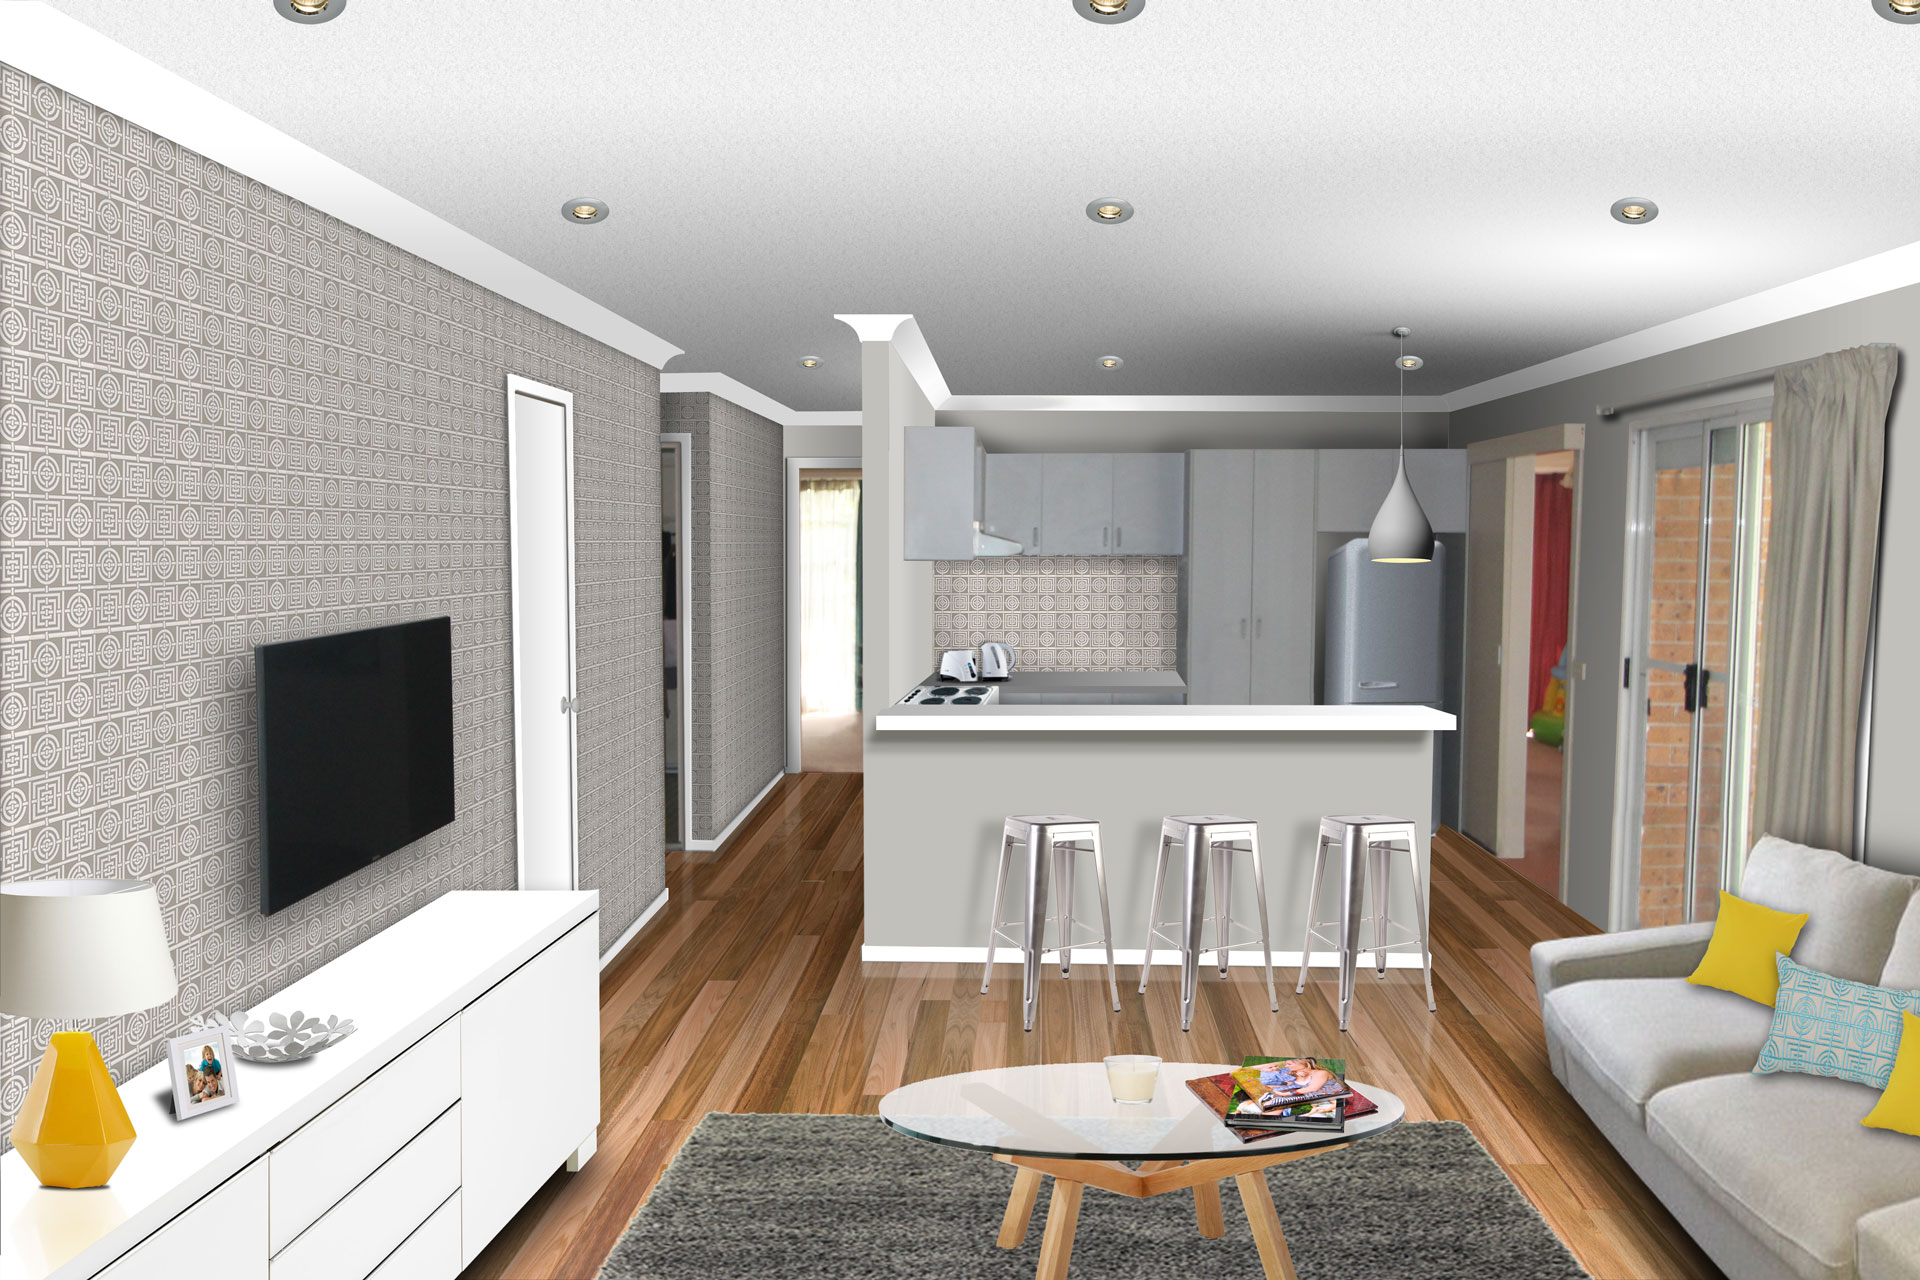 RFP-Virtual-Makeover-Apr2014-AFTER.jpg